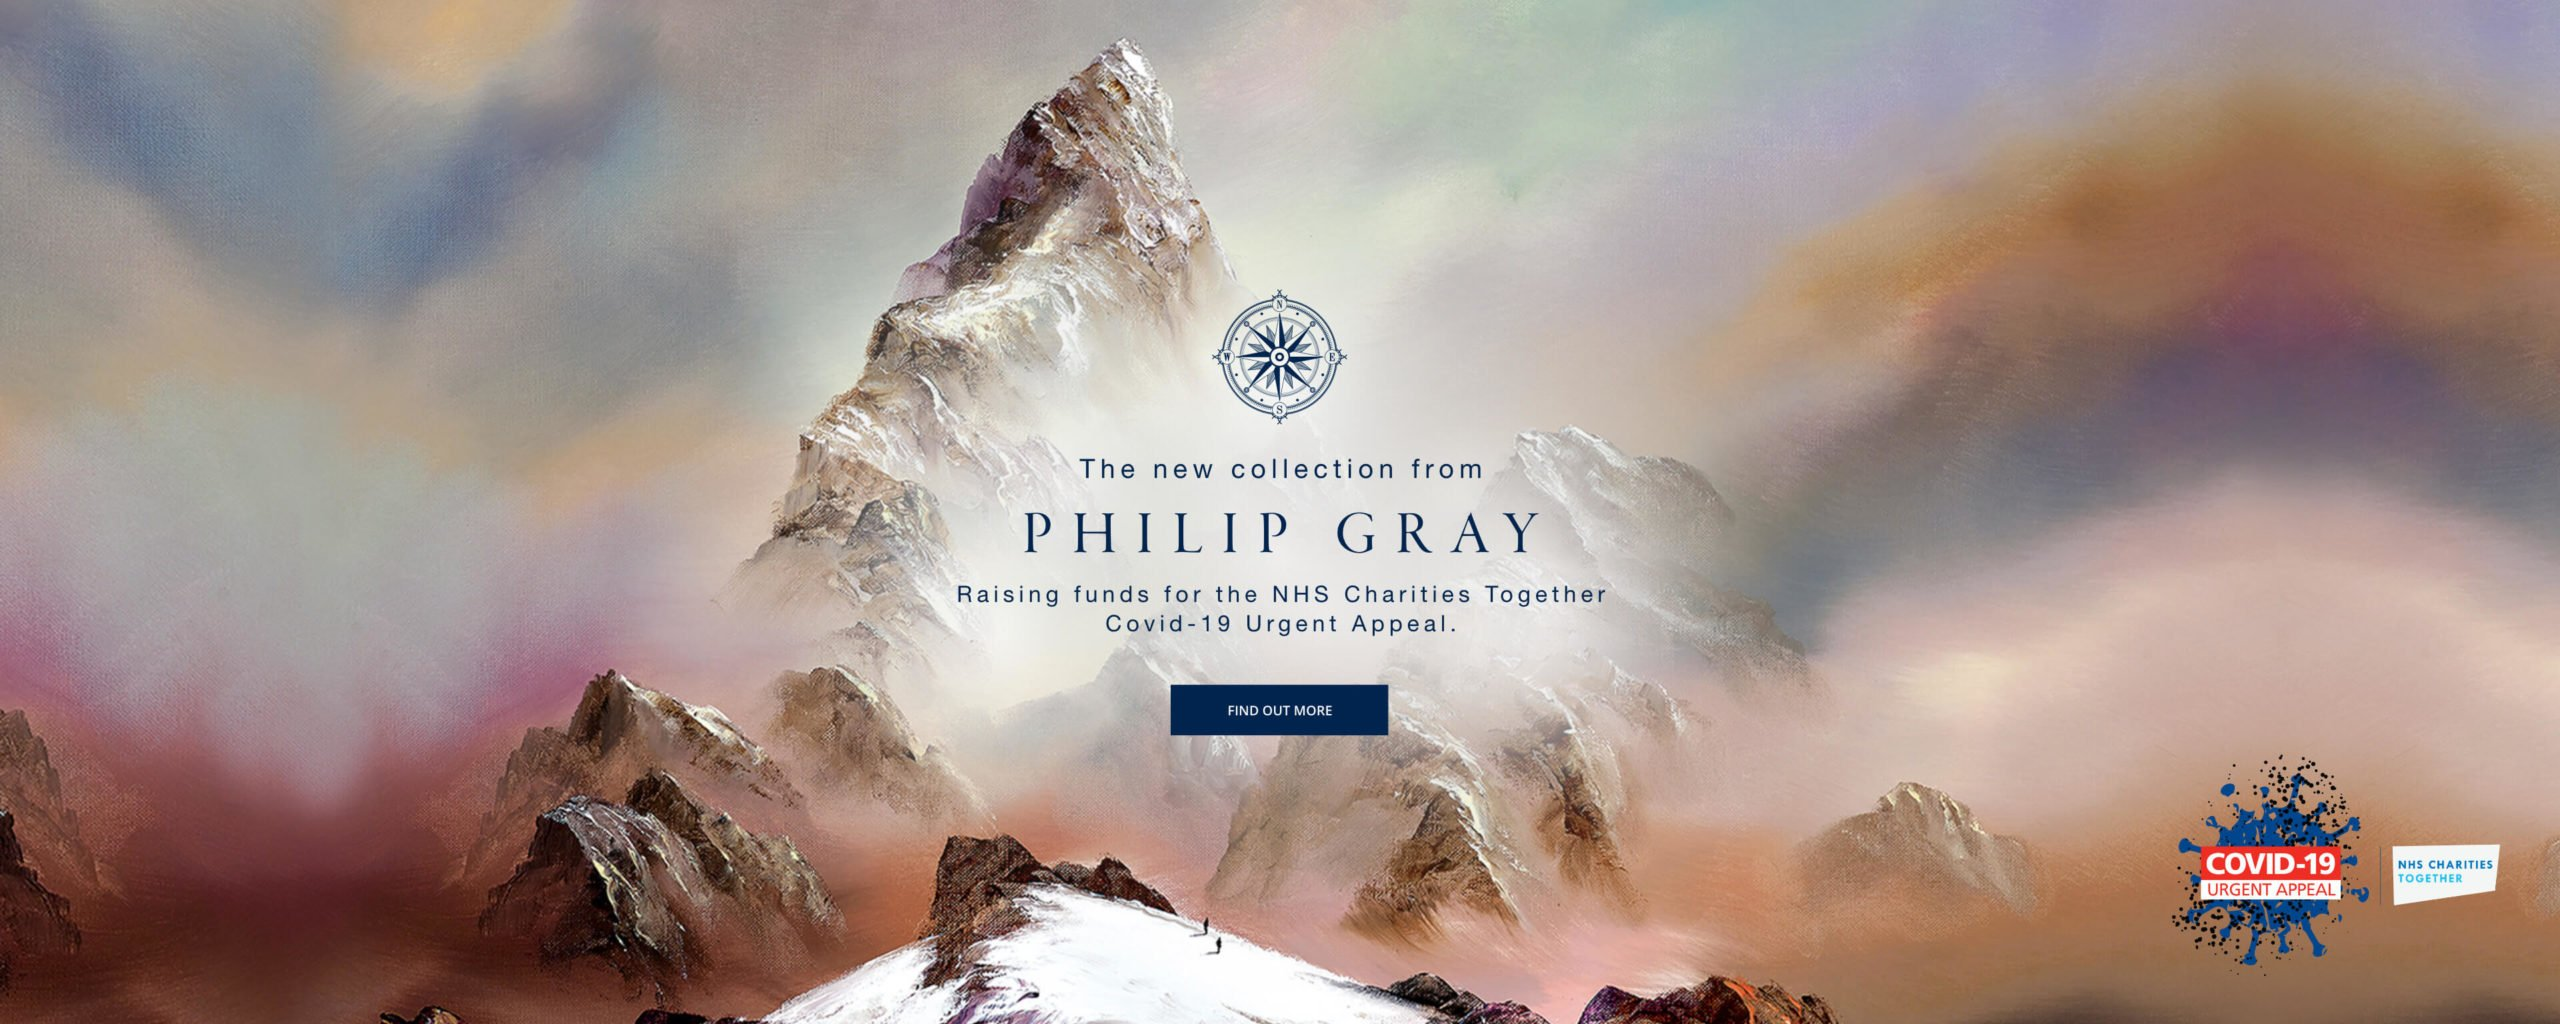 Philip Gray New Release